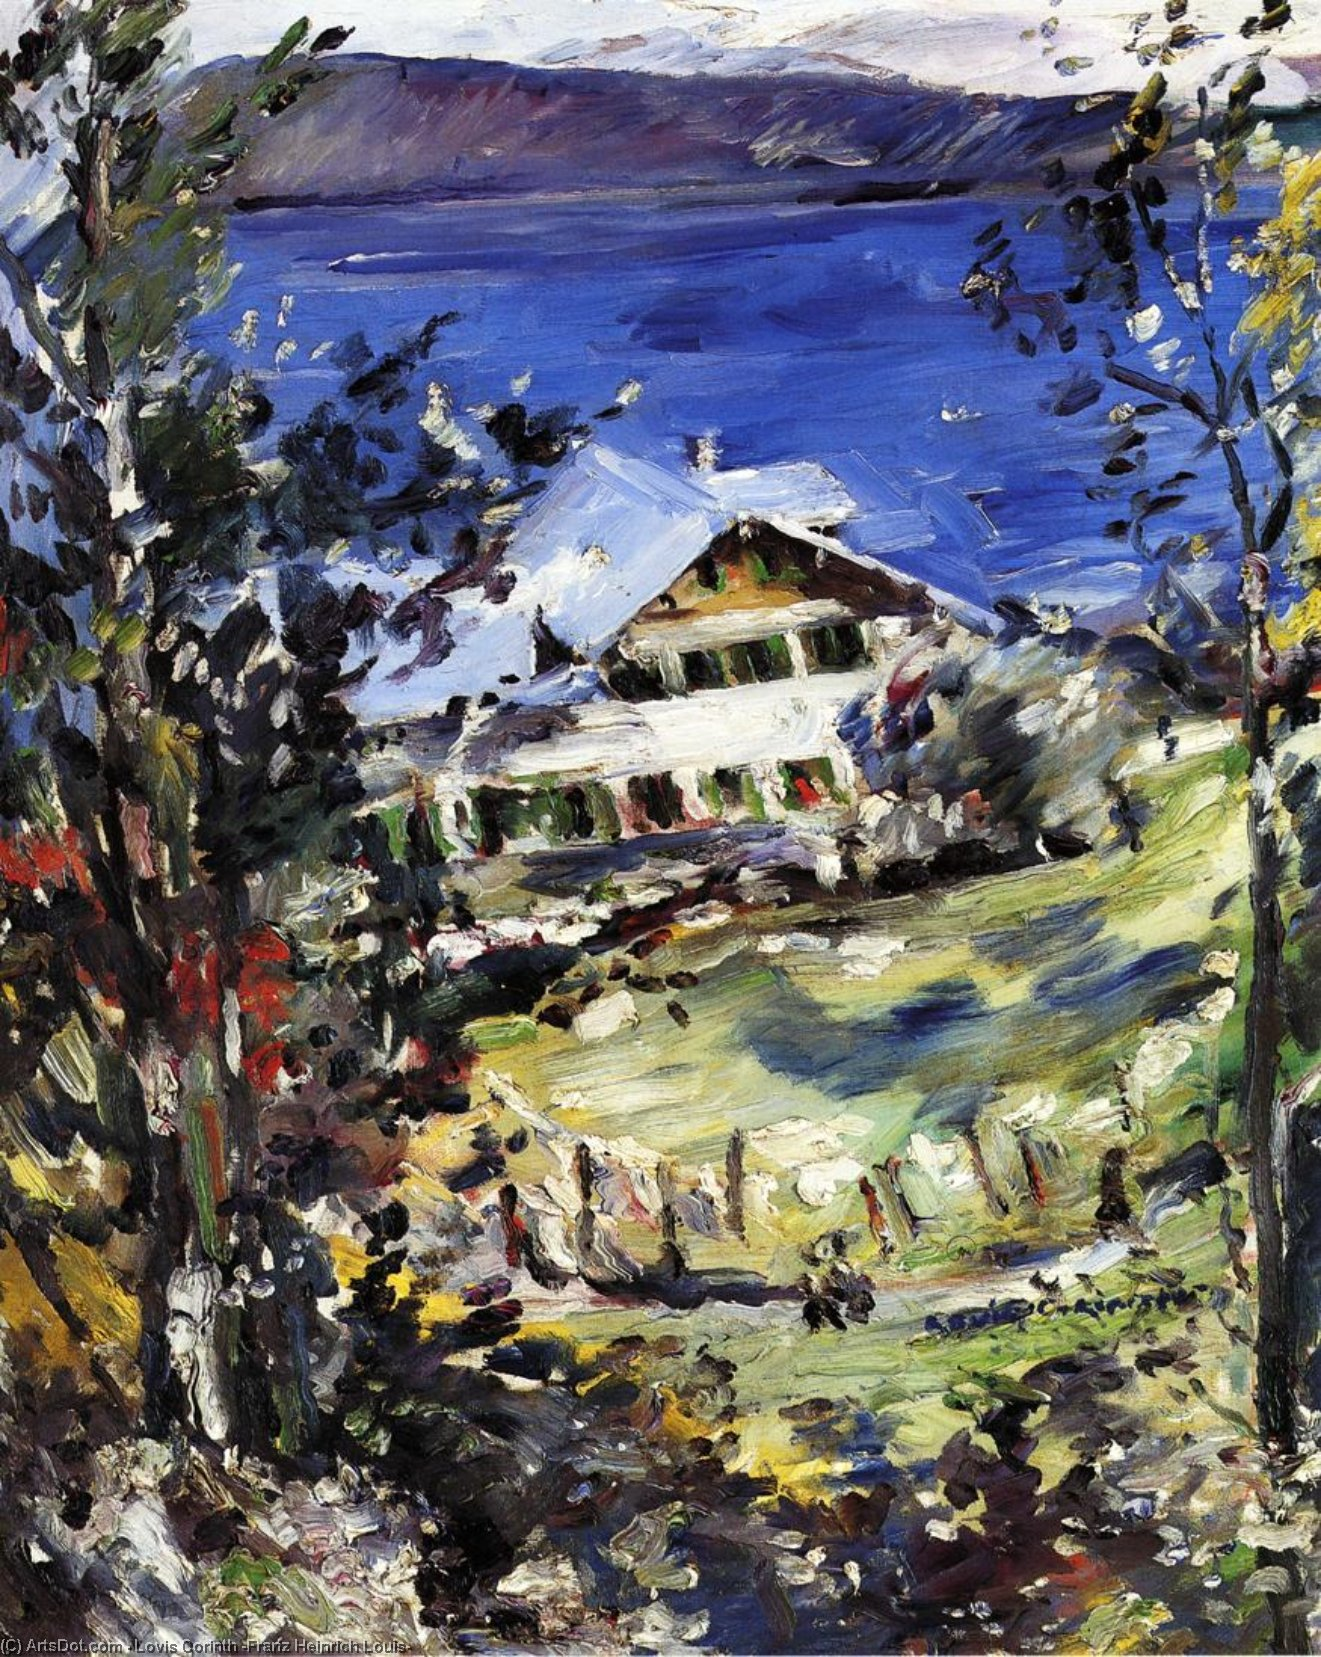 The Walchensee, Country House with Washing on the Line, Oil On Canvas by Lovis Corinth (Franz Heinrich Louis) (1858-1925, Netherlands)